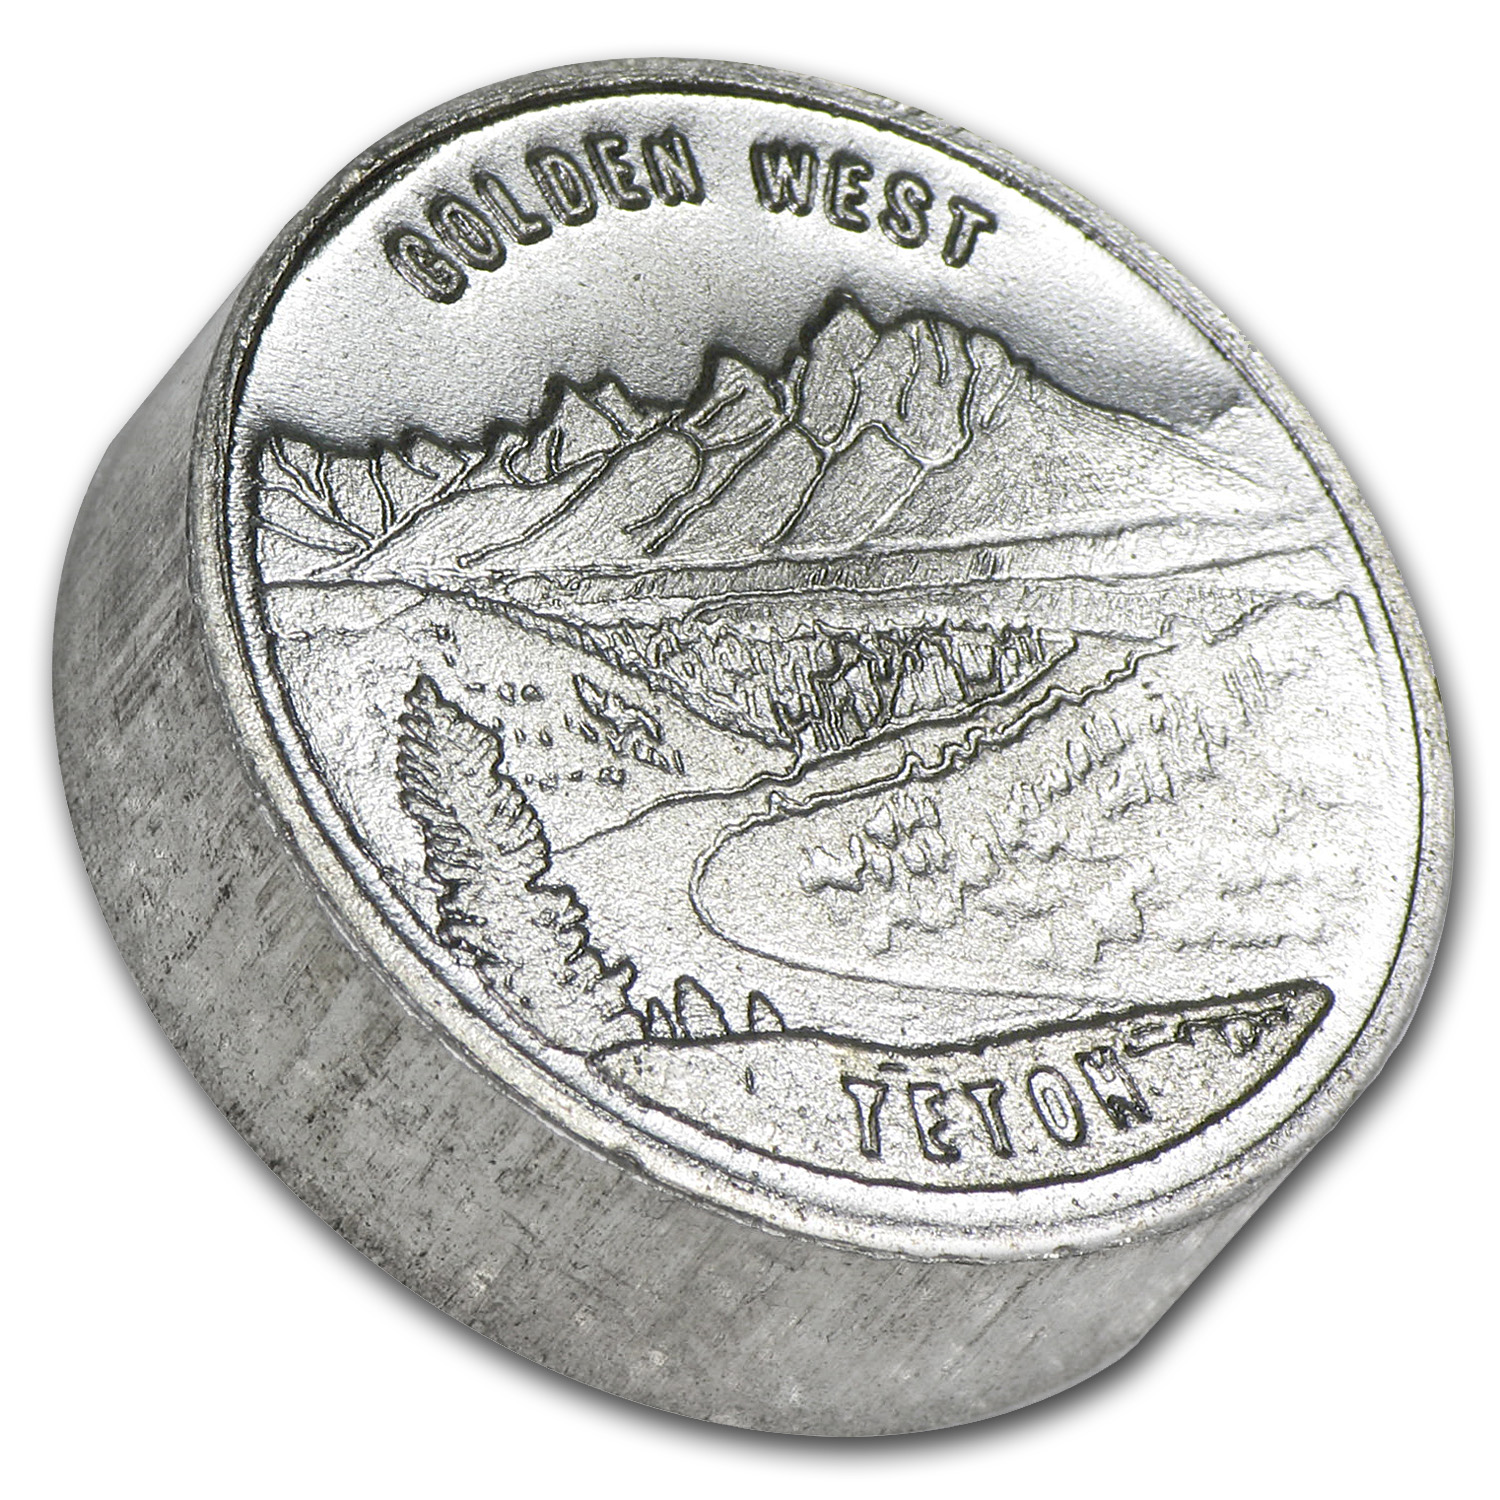 1 oz Silver Rounds - Swiss of America (Golden West)